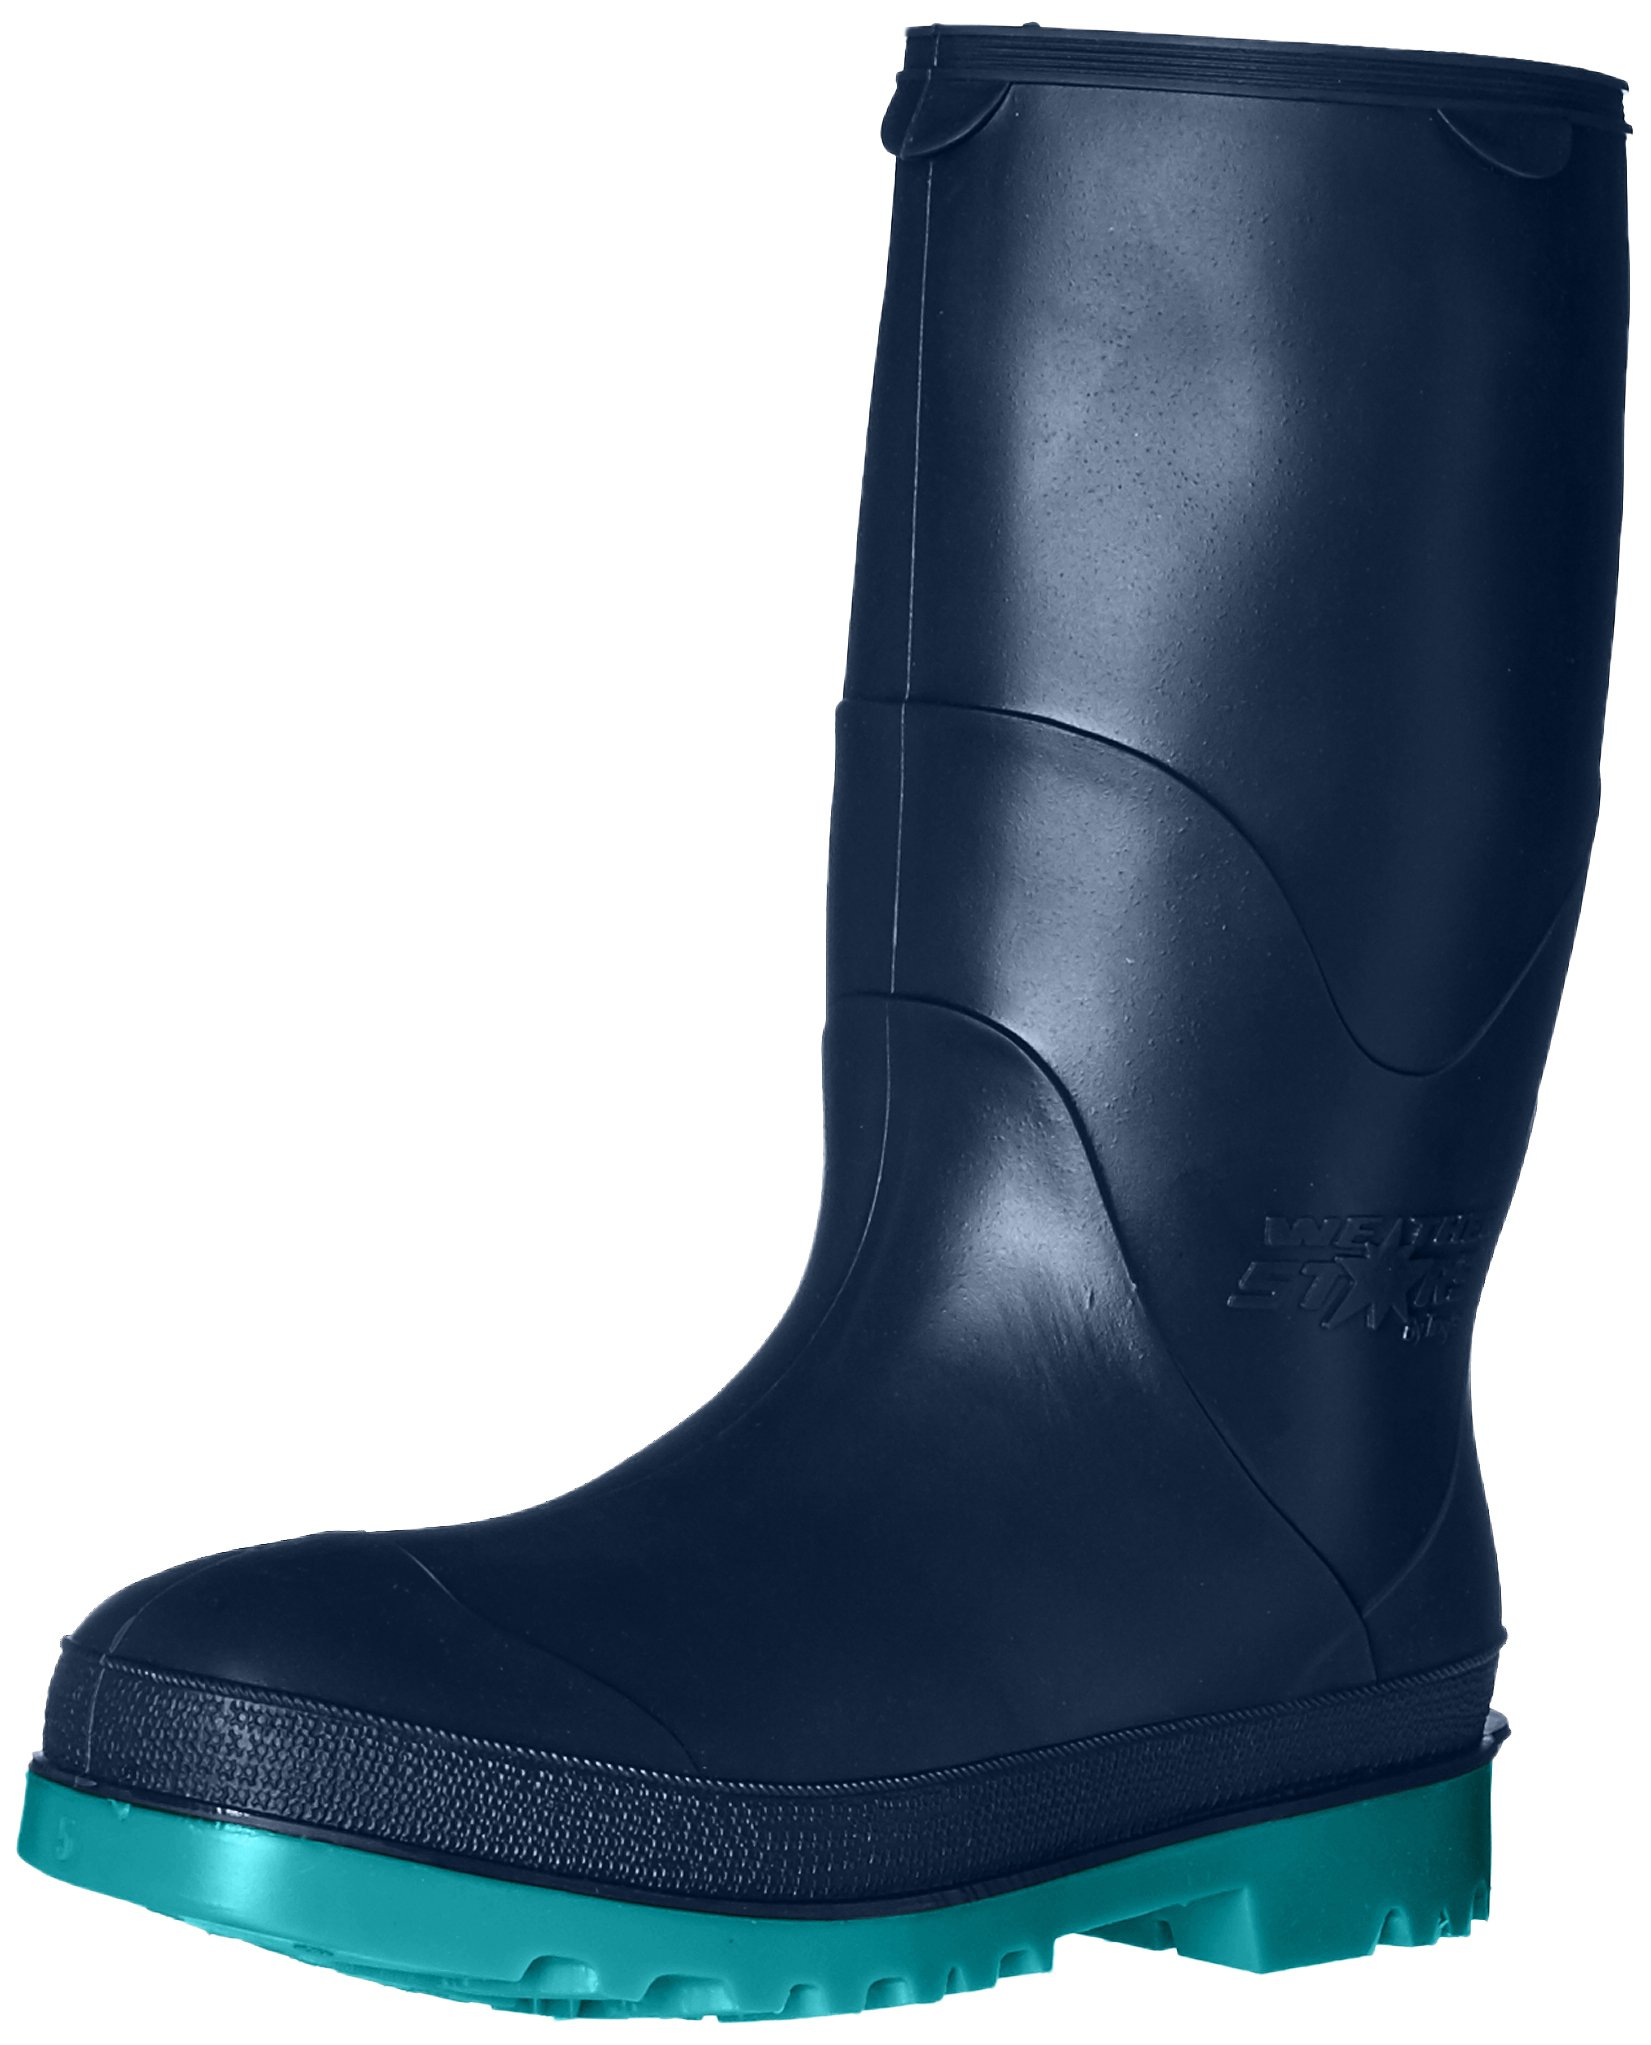 STORMTRACKS 11768.04 Youths' Boot, Size 04, Blue/Green by STORMTRACKS (Image #9)